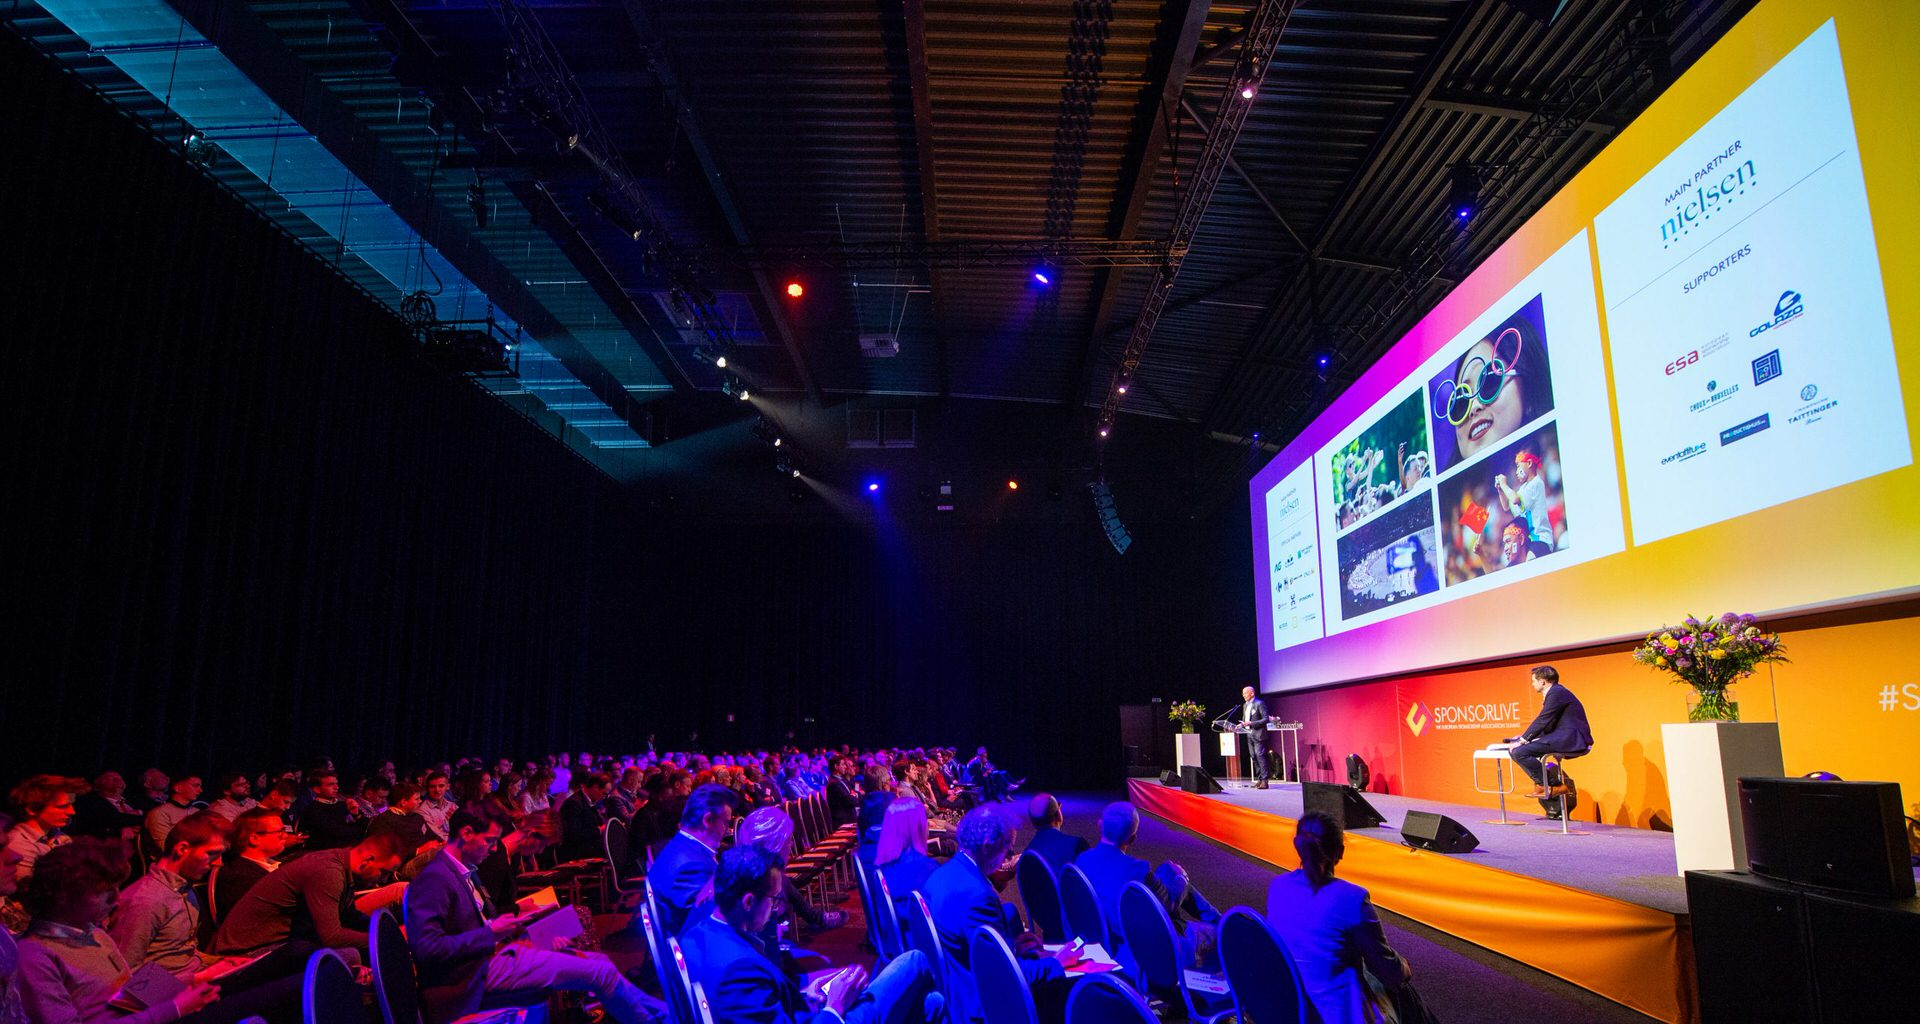 Stage view of SponsorLive during the conference